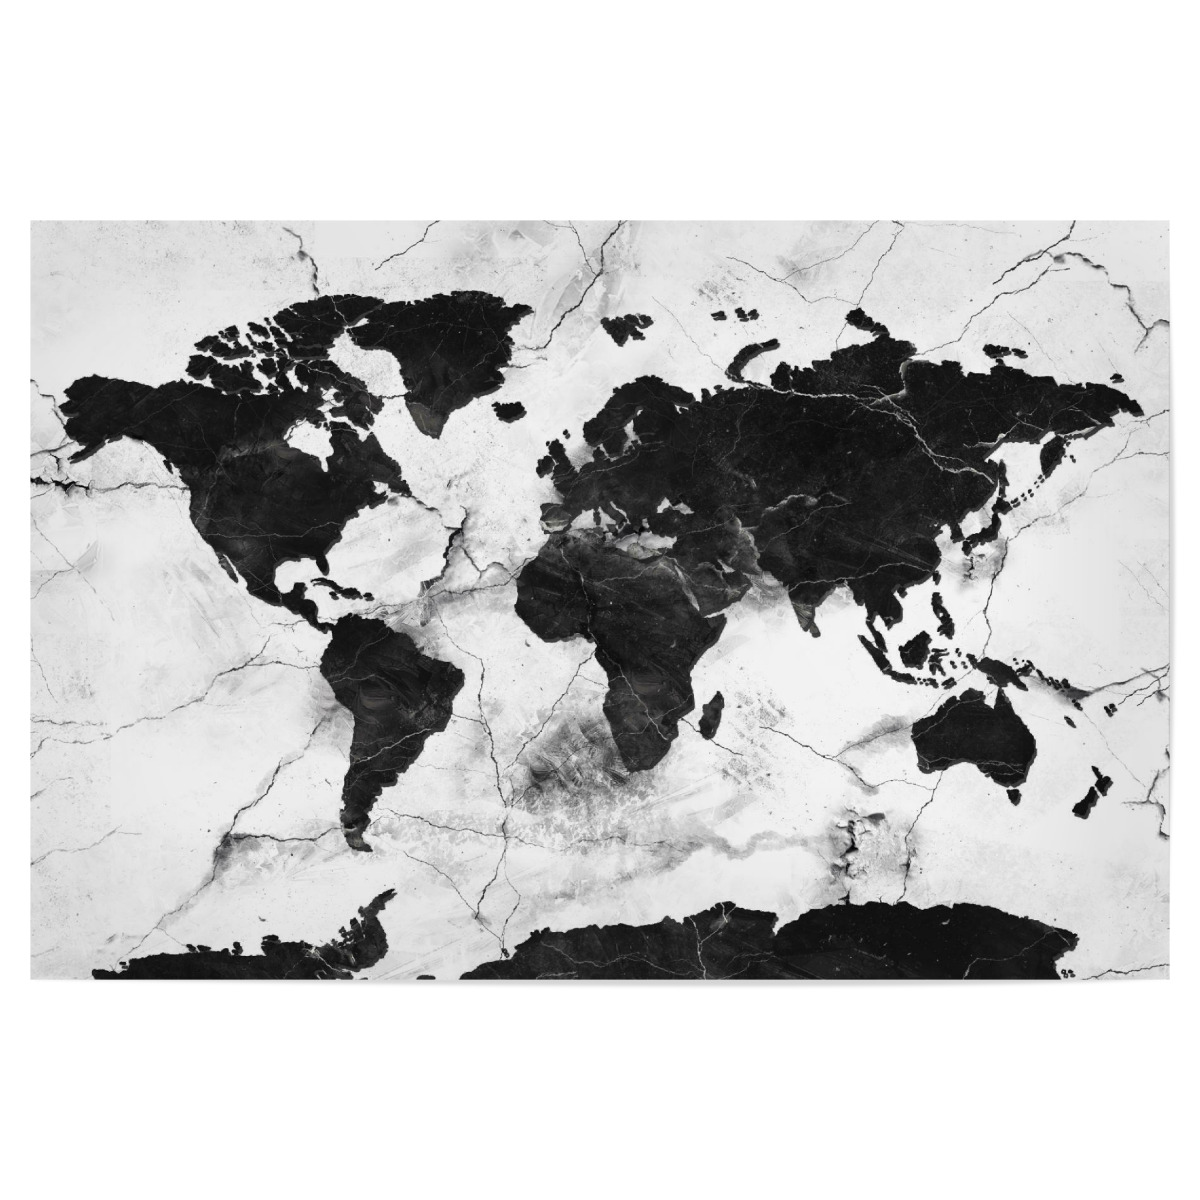 world map marble black and white als Poster bei artboxONE kaufen